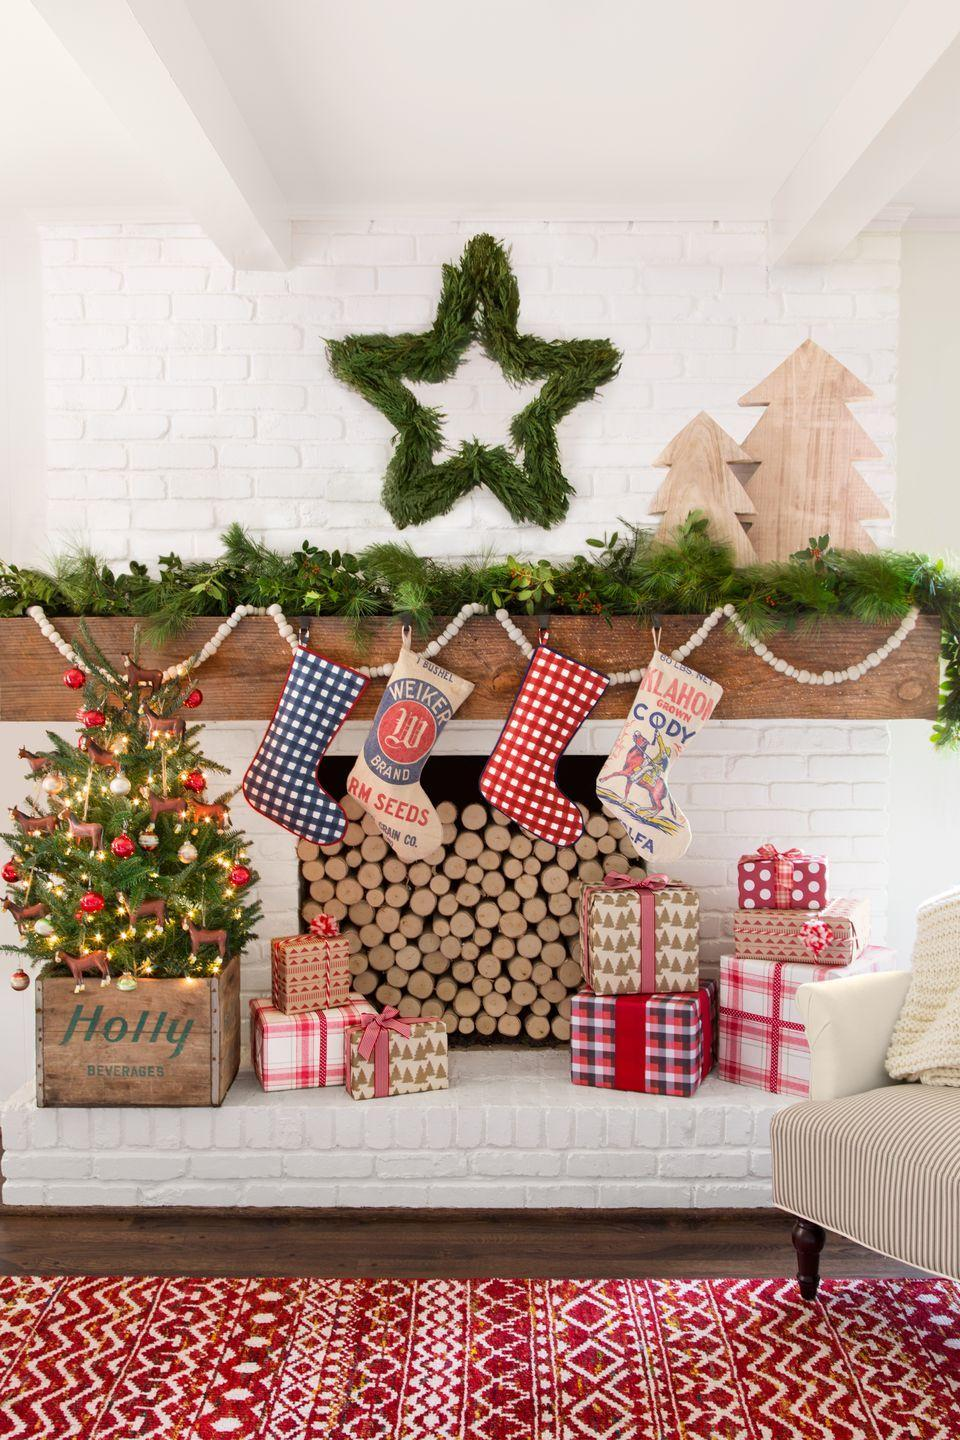 """<p>A wreath in the shape of a star, bright and cheery presents, and country-style stockings create the perfect Christmas scene.</p><p><strong><a class=""""link rapid-noclick-resp"""" href=""""https://go.redirectingat.com?id=74968X1596630&url=https%3A%2F%2Fwww.etsy.com%2Flisting%2F492911699%2Fchristmas-stocking-stocking-cowboy&sref=https%3A%2F%2Fwww.countryliving.com%2Fhome-design%2Fdecorating-ideas%2Fadvice%2Fg1247%2Fholiday-decorating-1208%2F"""" rel=""""nofollow noopener"""" target=""""_blank"""" data-ylk=""""slk:SHOP STOCKINGS"""">SHOP STOCKINGS</a></strong></p>"""